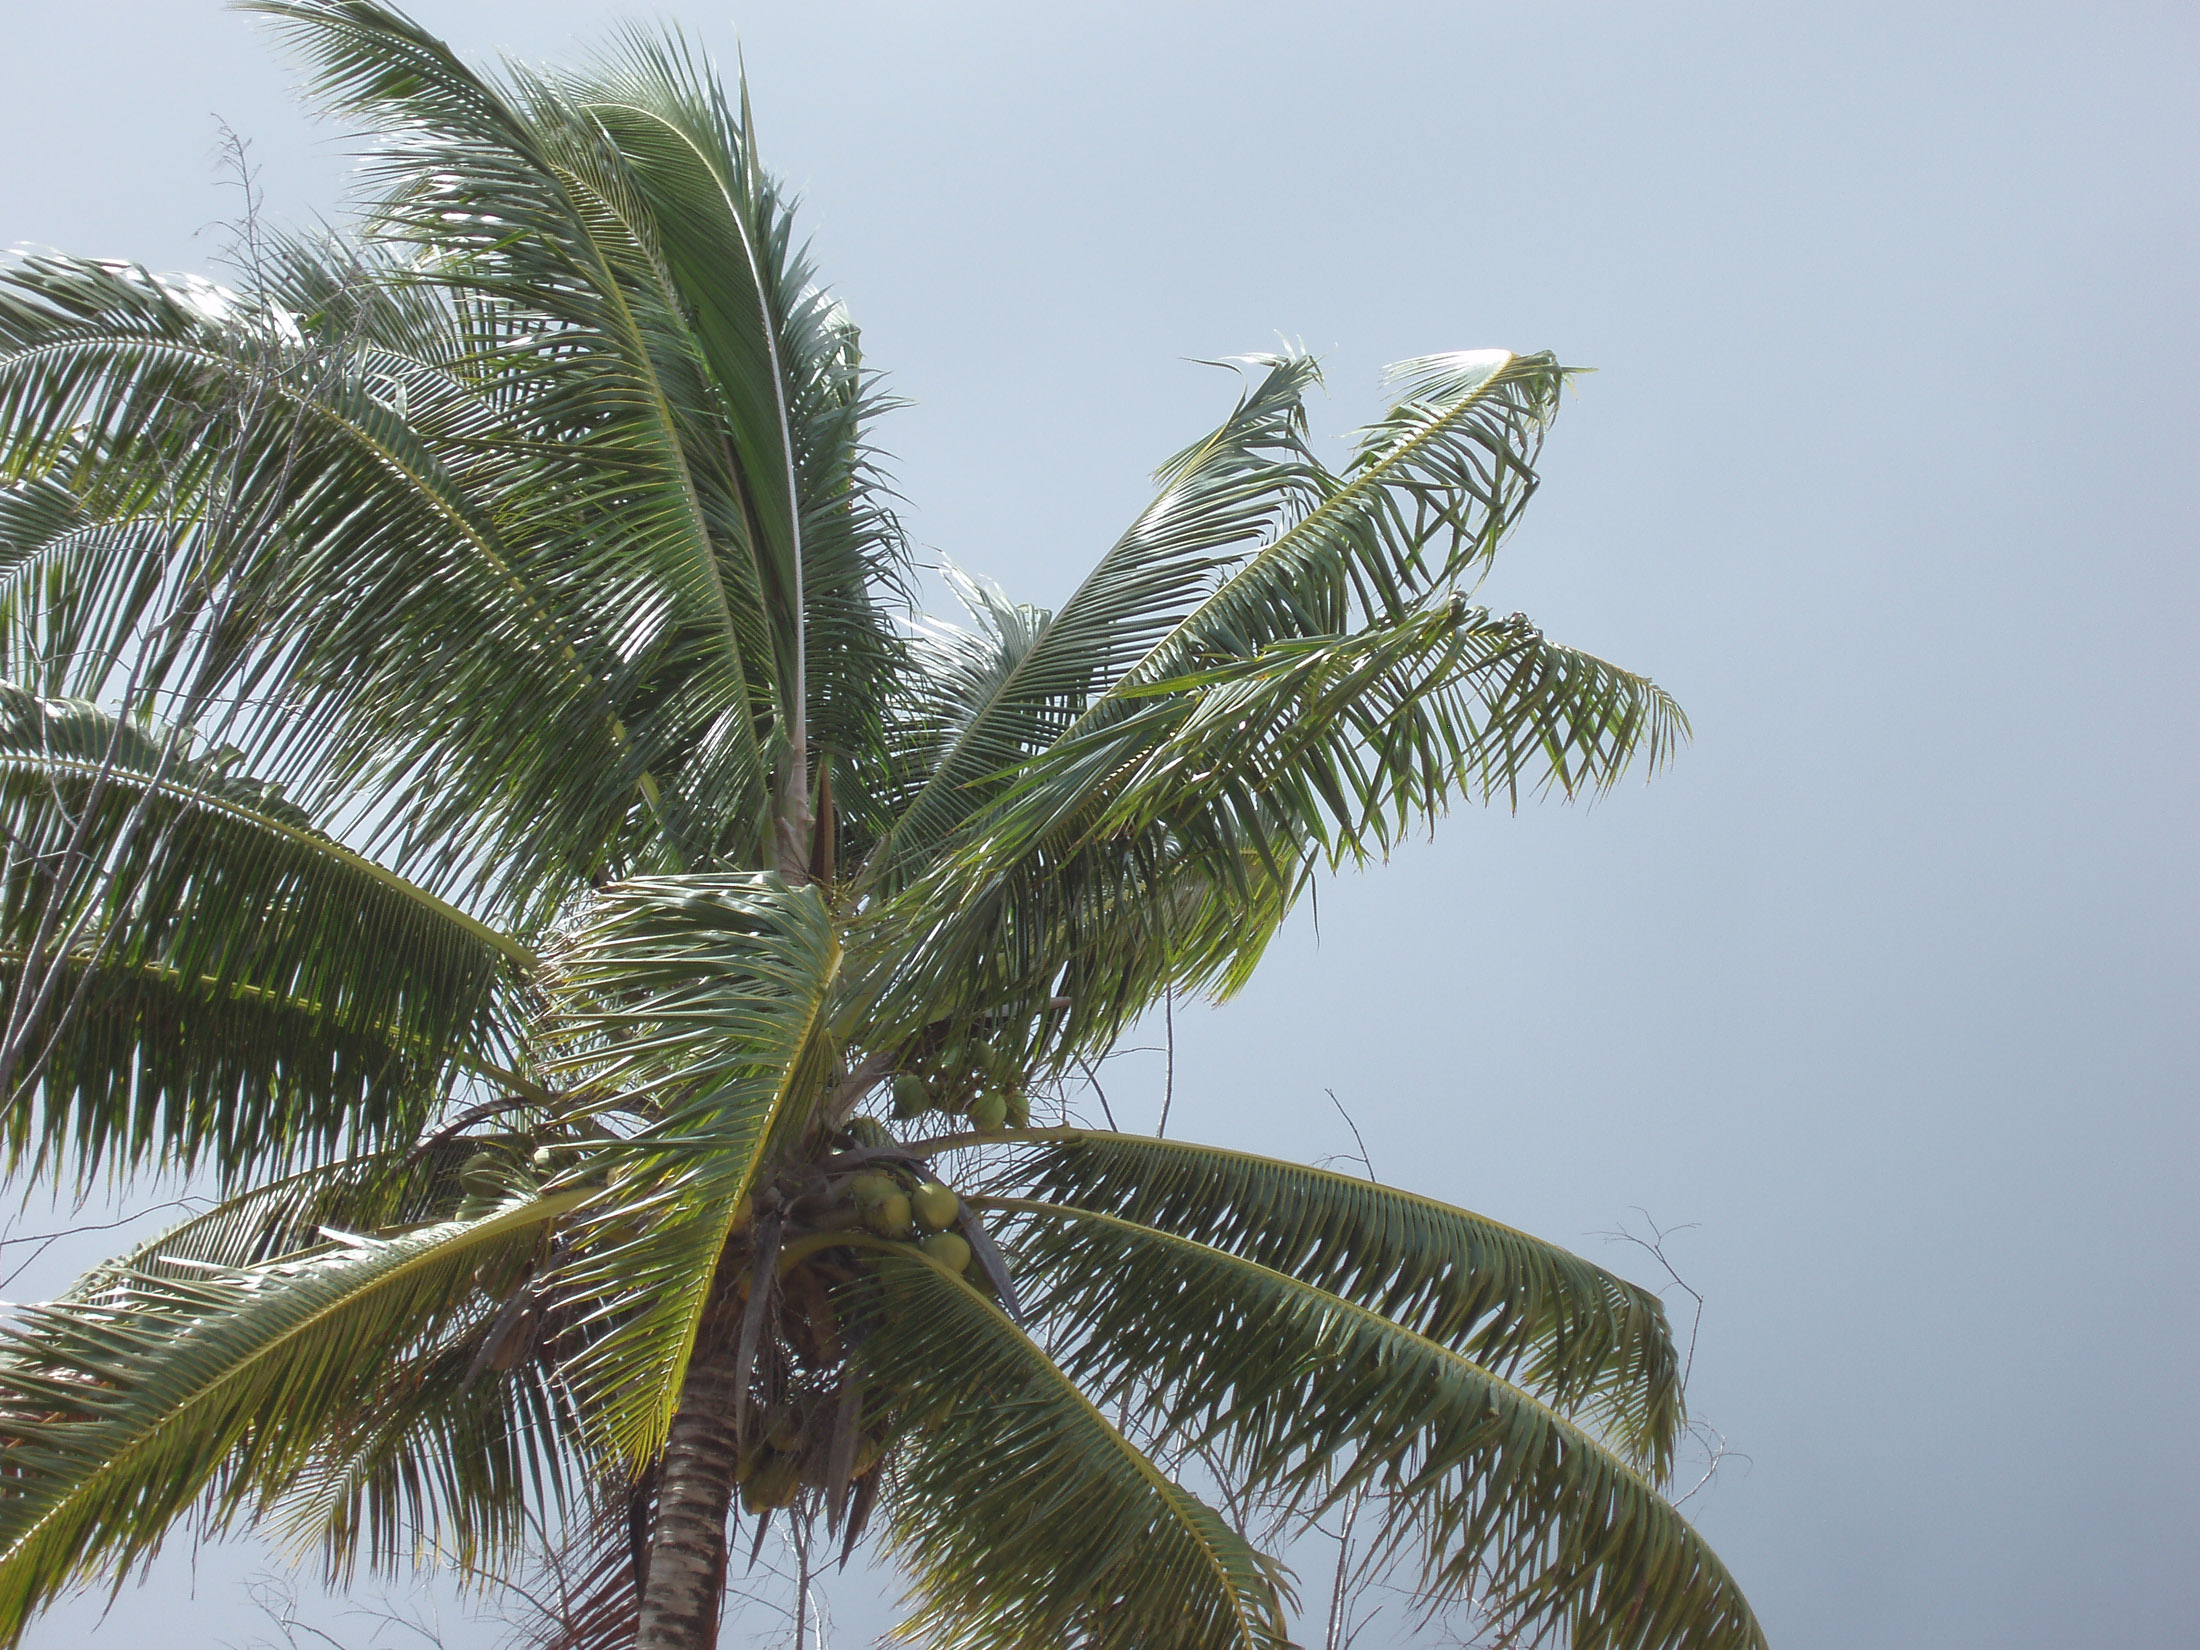 close up at a palm tree bearing coconuts